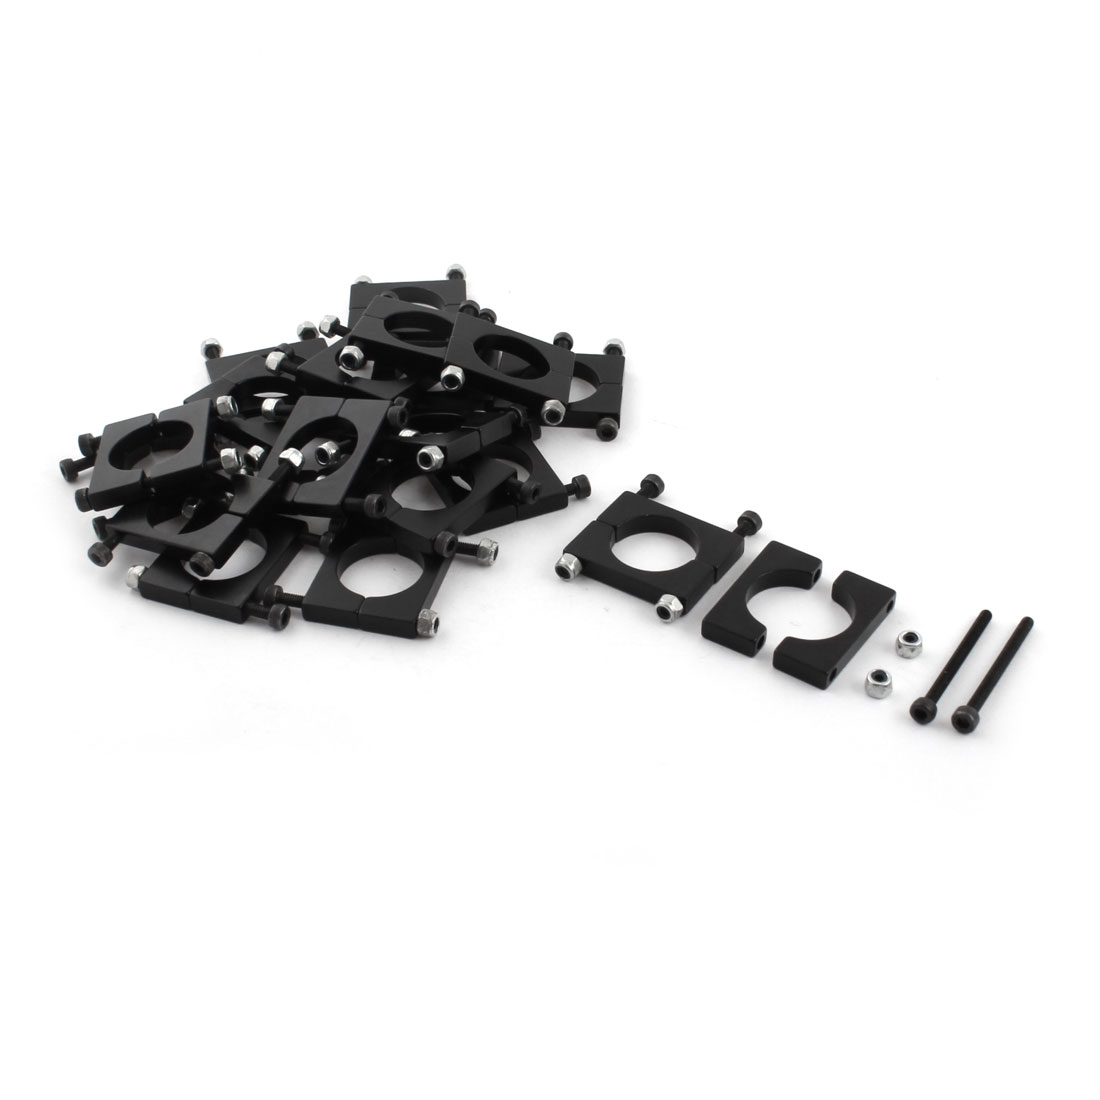 20 Pcs 20mm Black Aluminum Clamp for Carbon Fiber Tube RC Quadcopter Hexrcopter